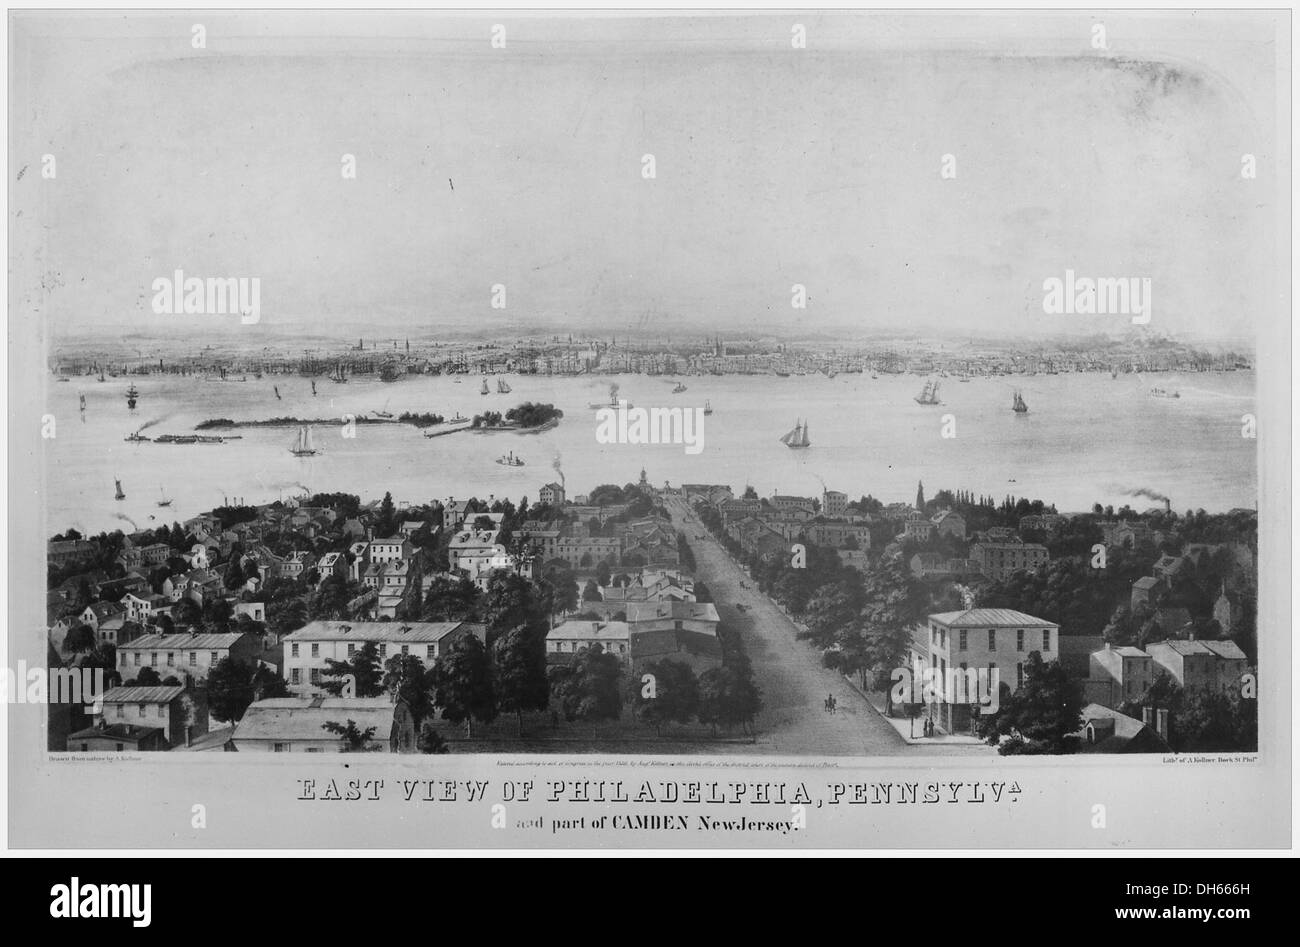 East View of Philadelphia, Pennsylvania, and part of Camden, New Jersey , ca. 1836 - Stock Image